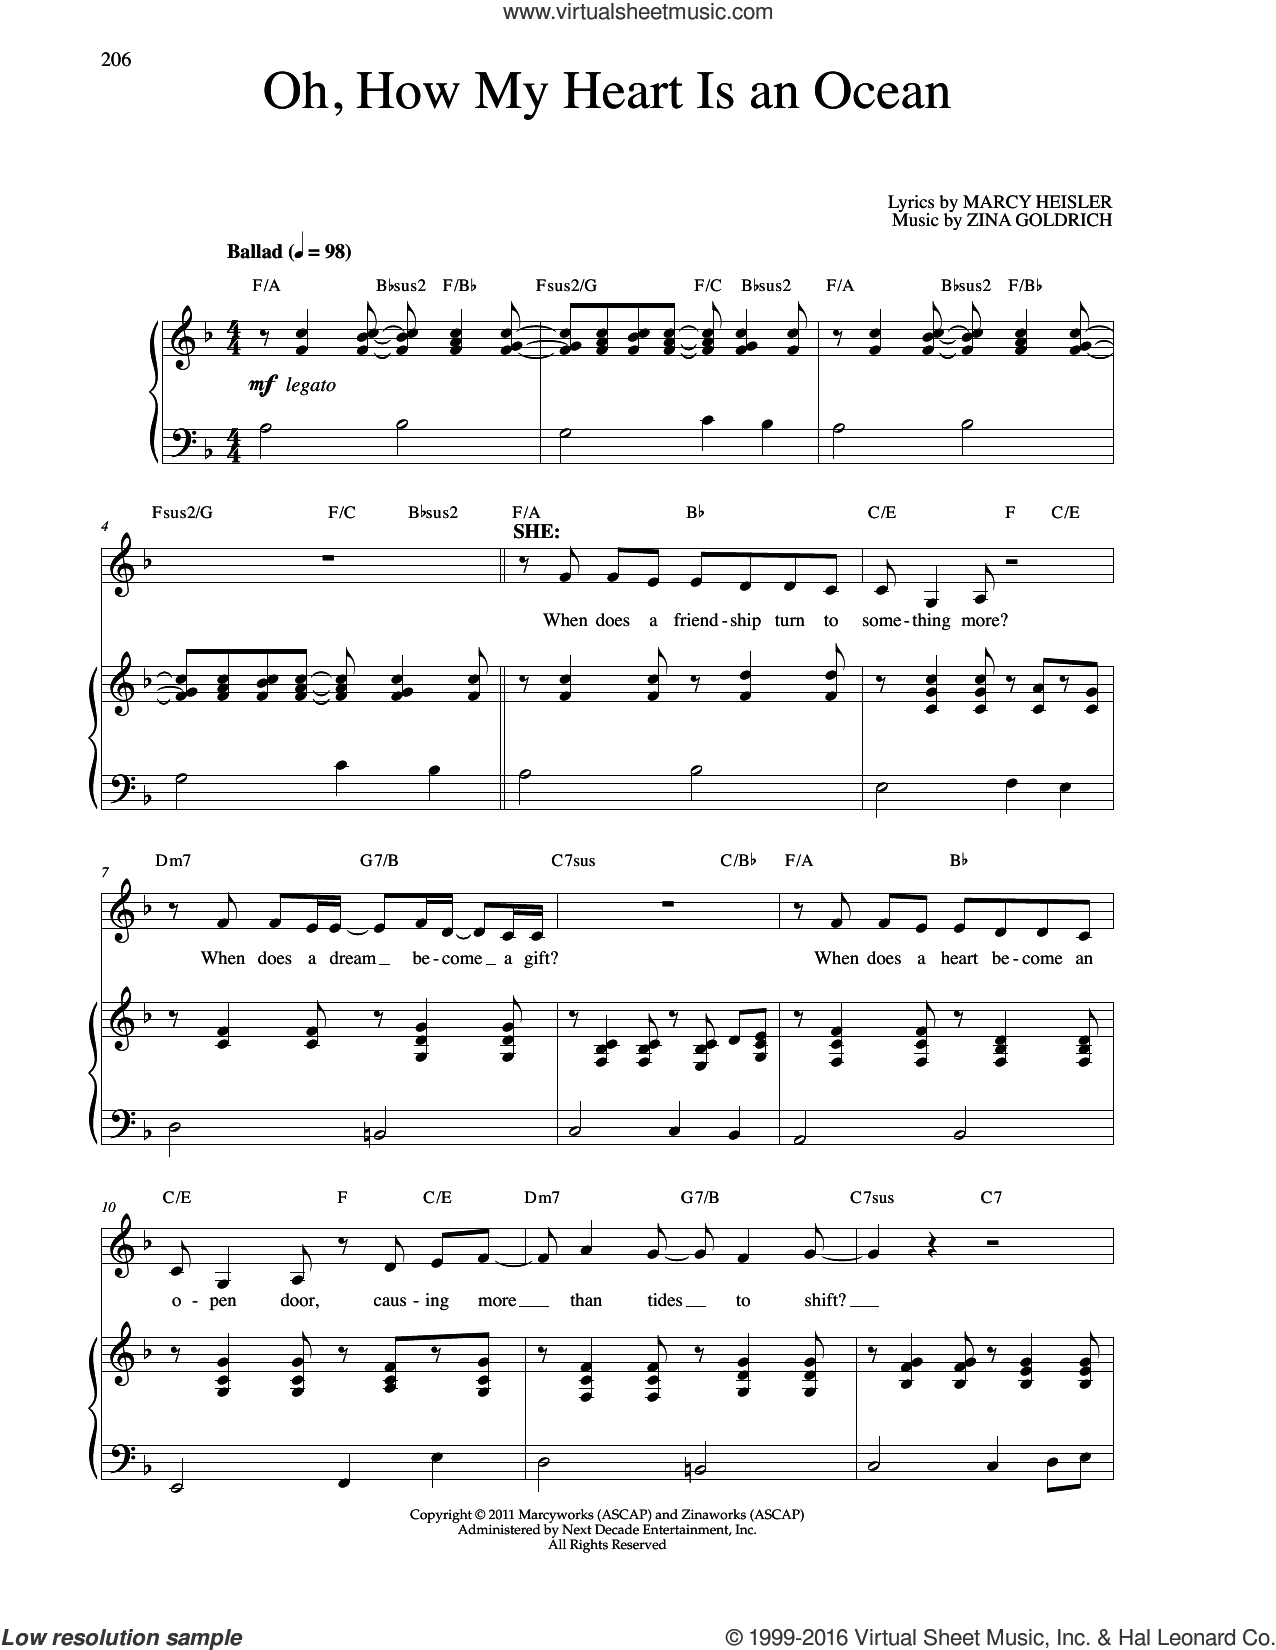 Oh, How My Heart Is An Ocean sheet music for voice and piano by Goldrich & Heisler, Marcy Heisler and Zina Goldrich. Score Image Preview.